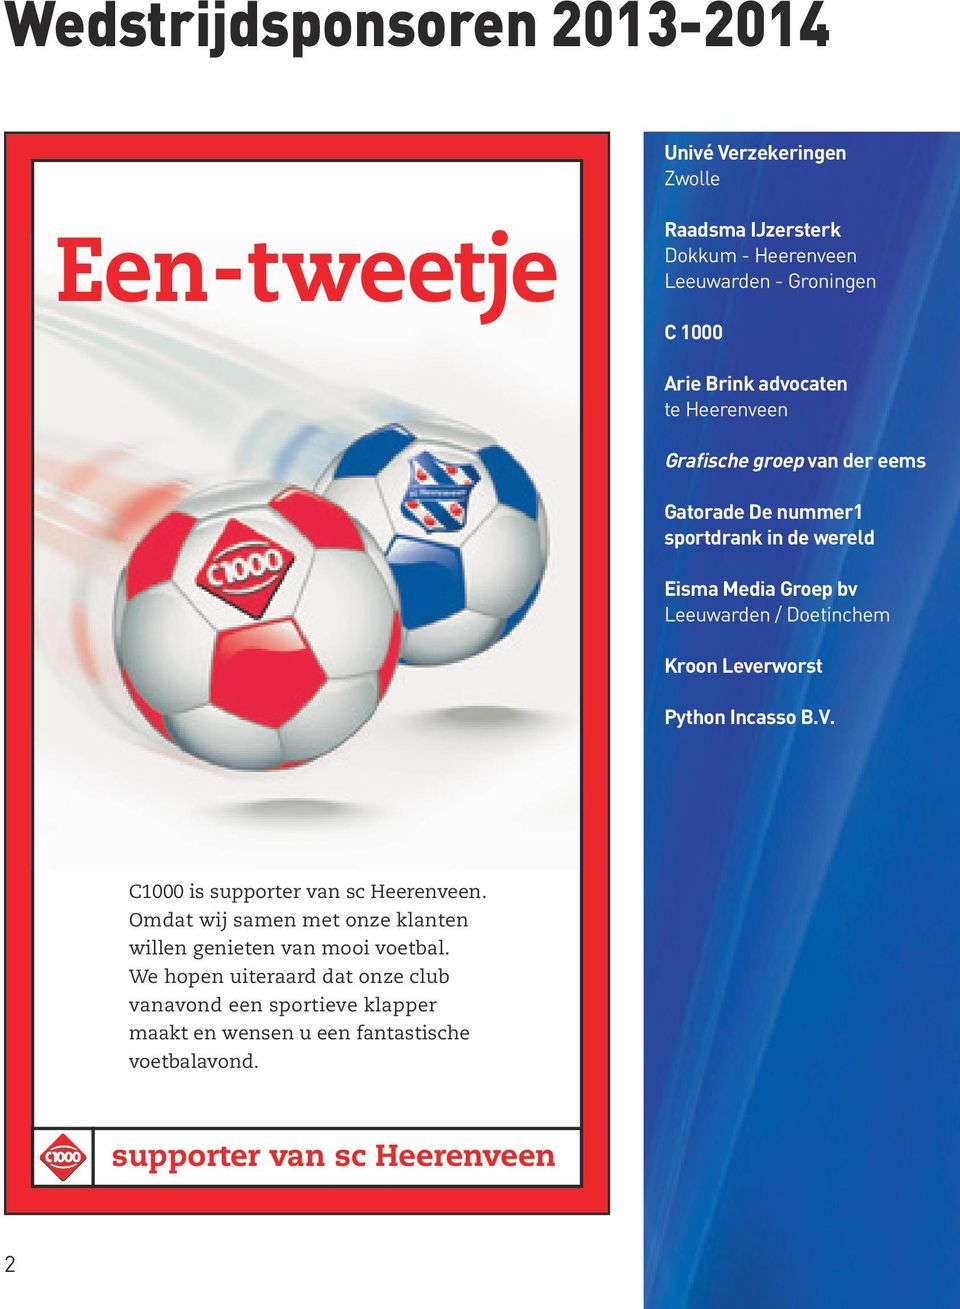 Doetinchem Kroon Leverworst Python Incasso B.V. C000 is supporter van sc Heerenveen.